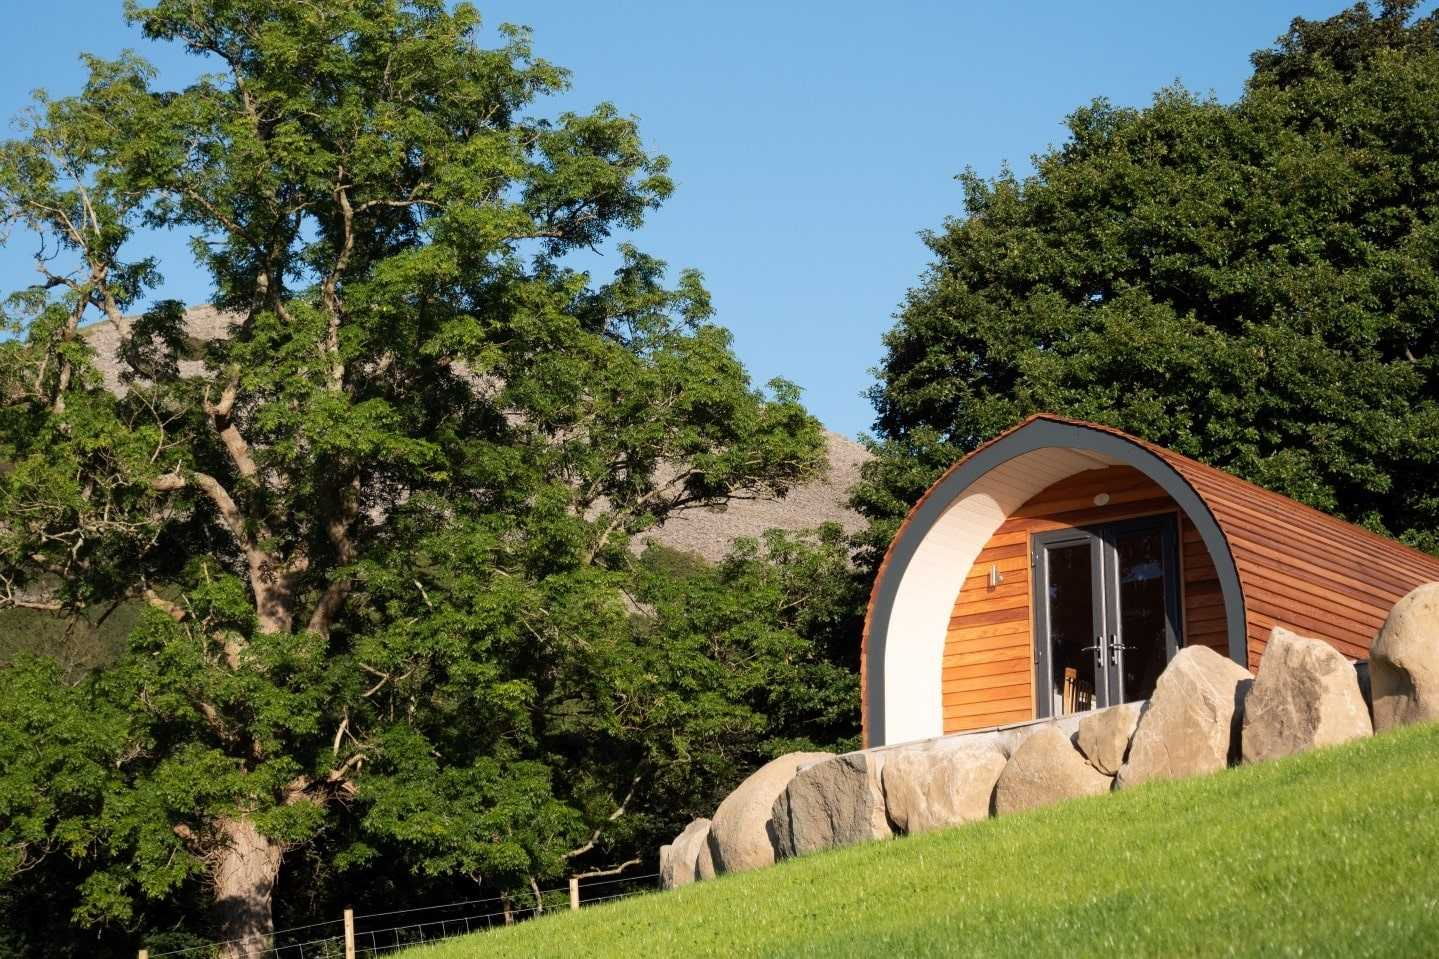 glamping-pod-at-top-of-green-field-with-mountain-in-background-three-streams-glamping